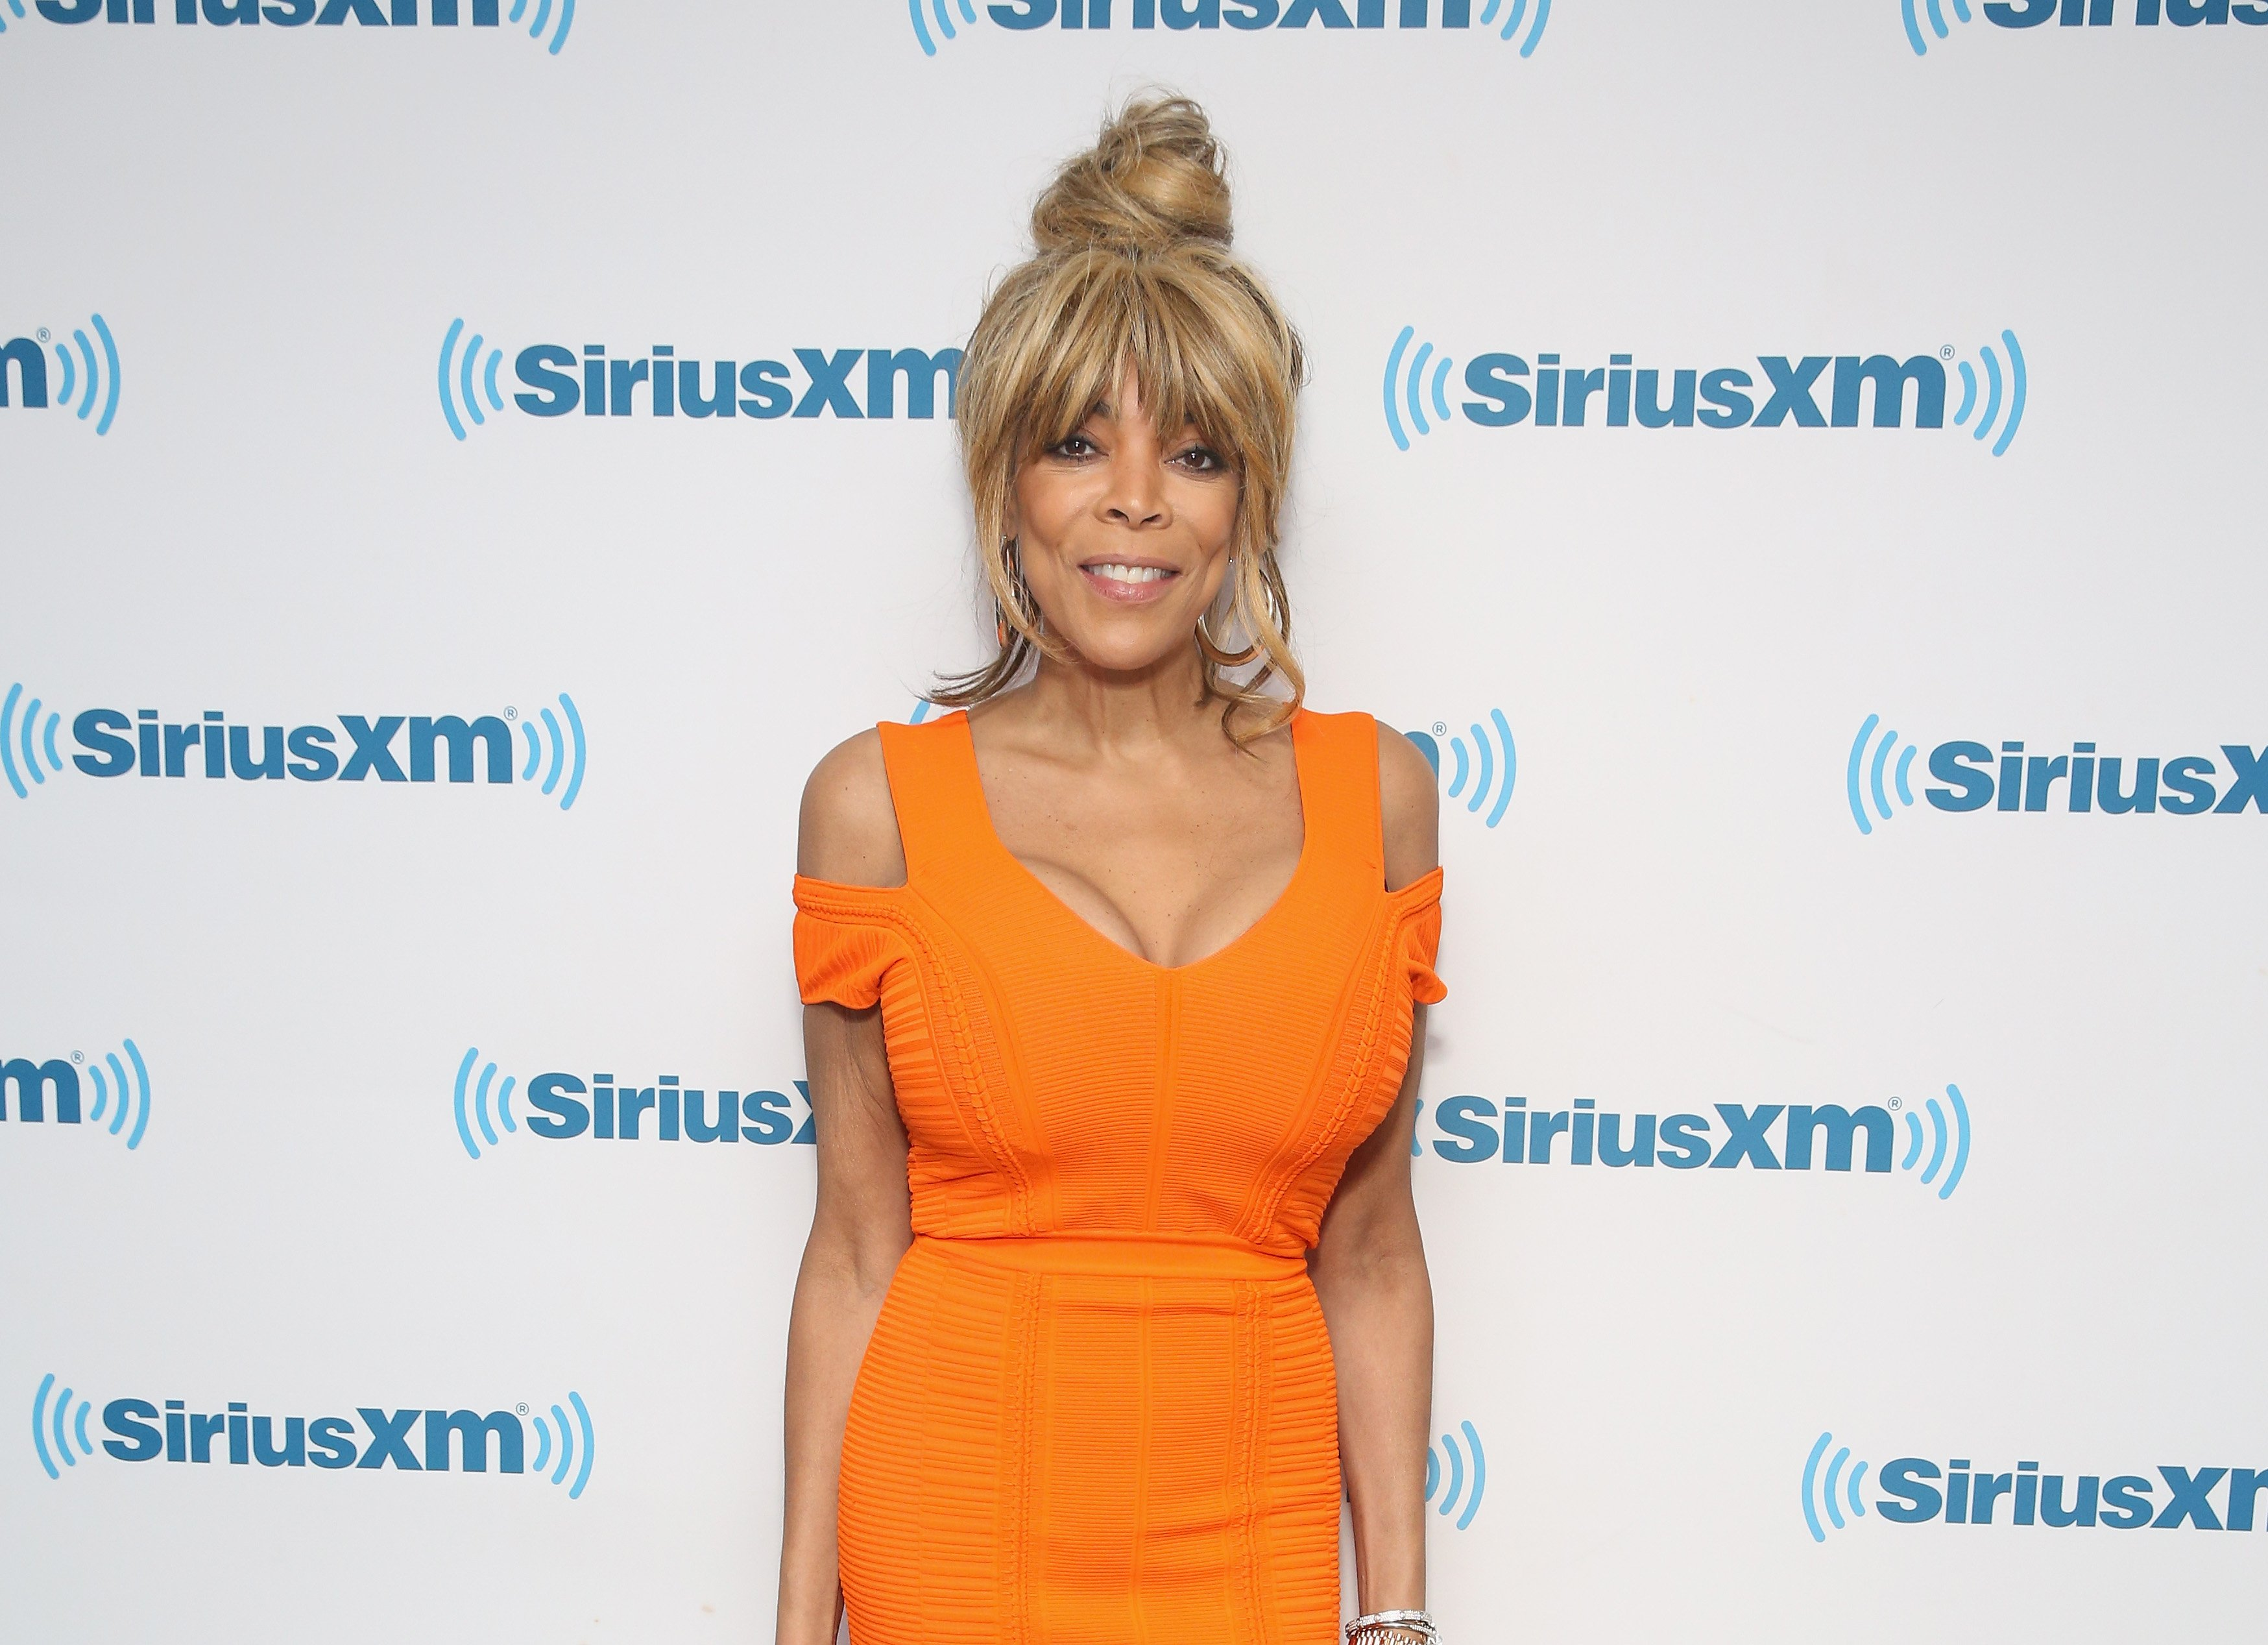 Wendy Williams visits the SiriusXM Studios on July 26, 2017 in New York City. | Photo: Getty Images